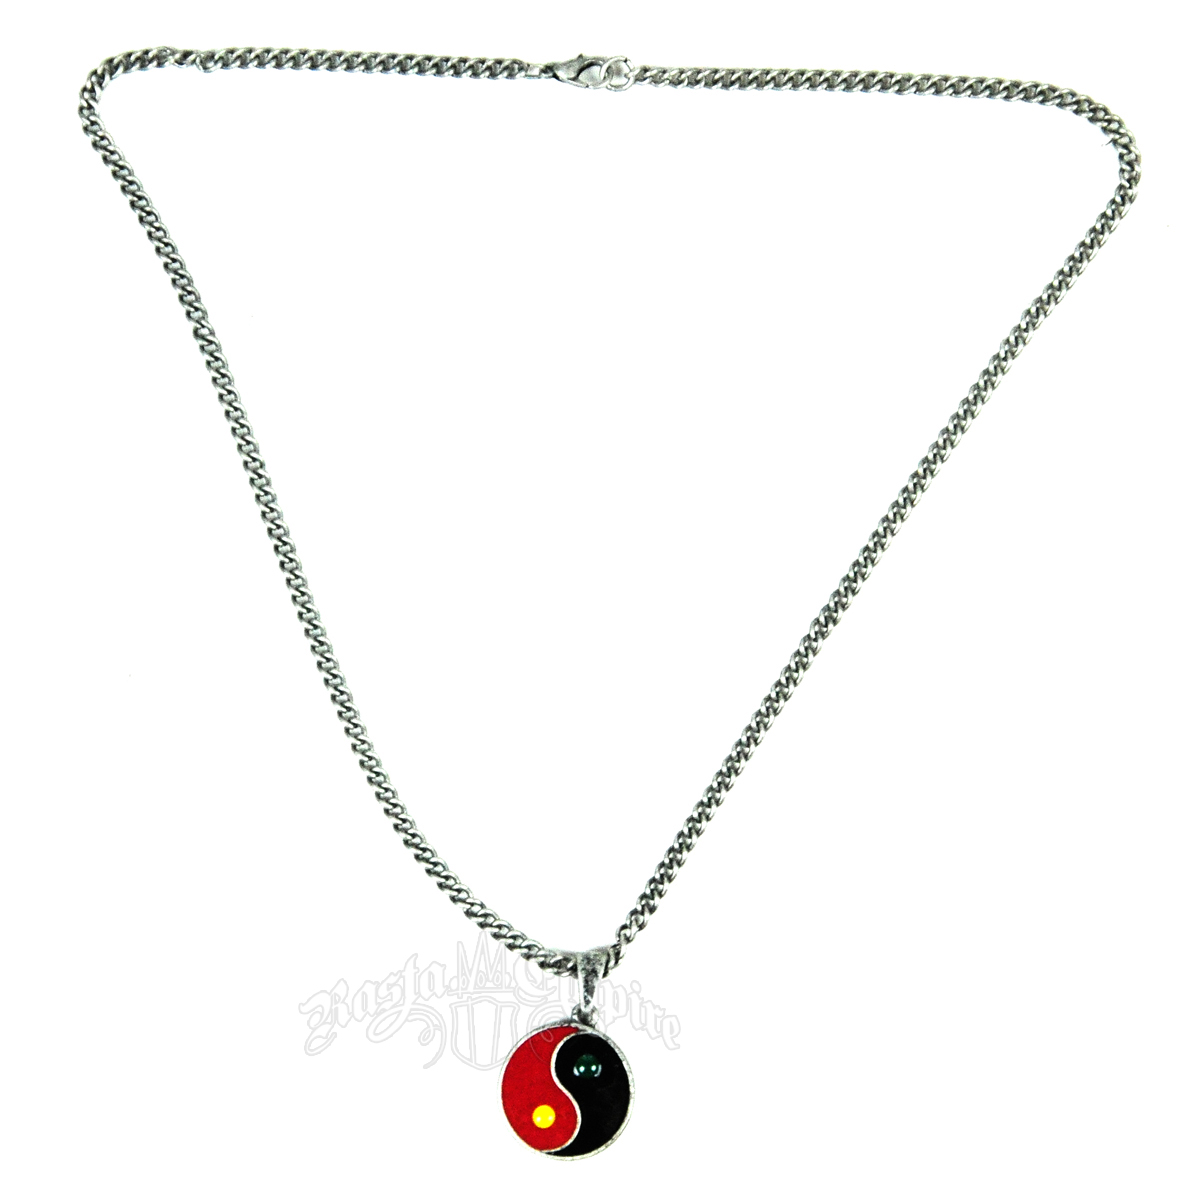 Rasta Ying Yang Necklace